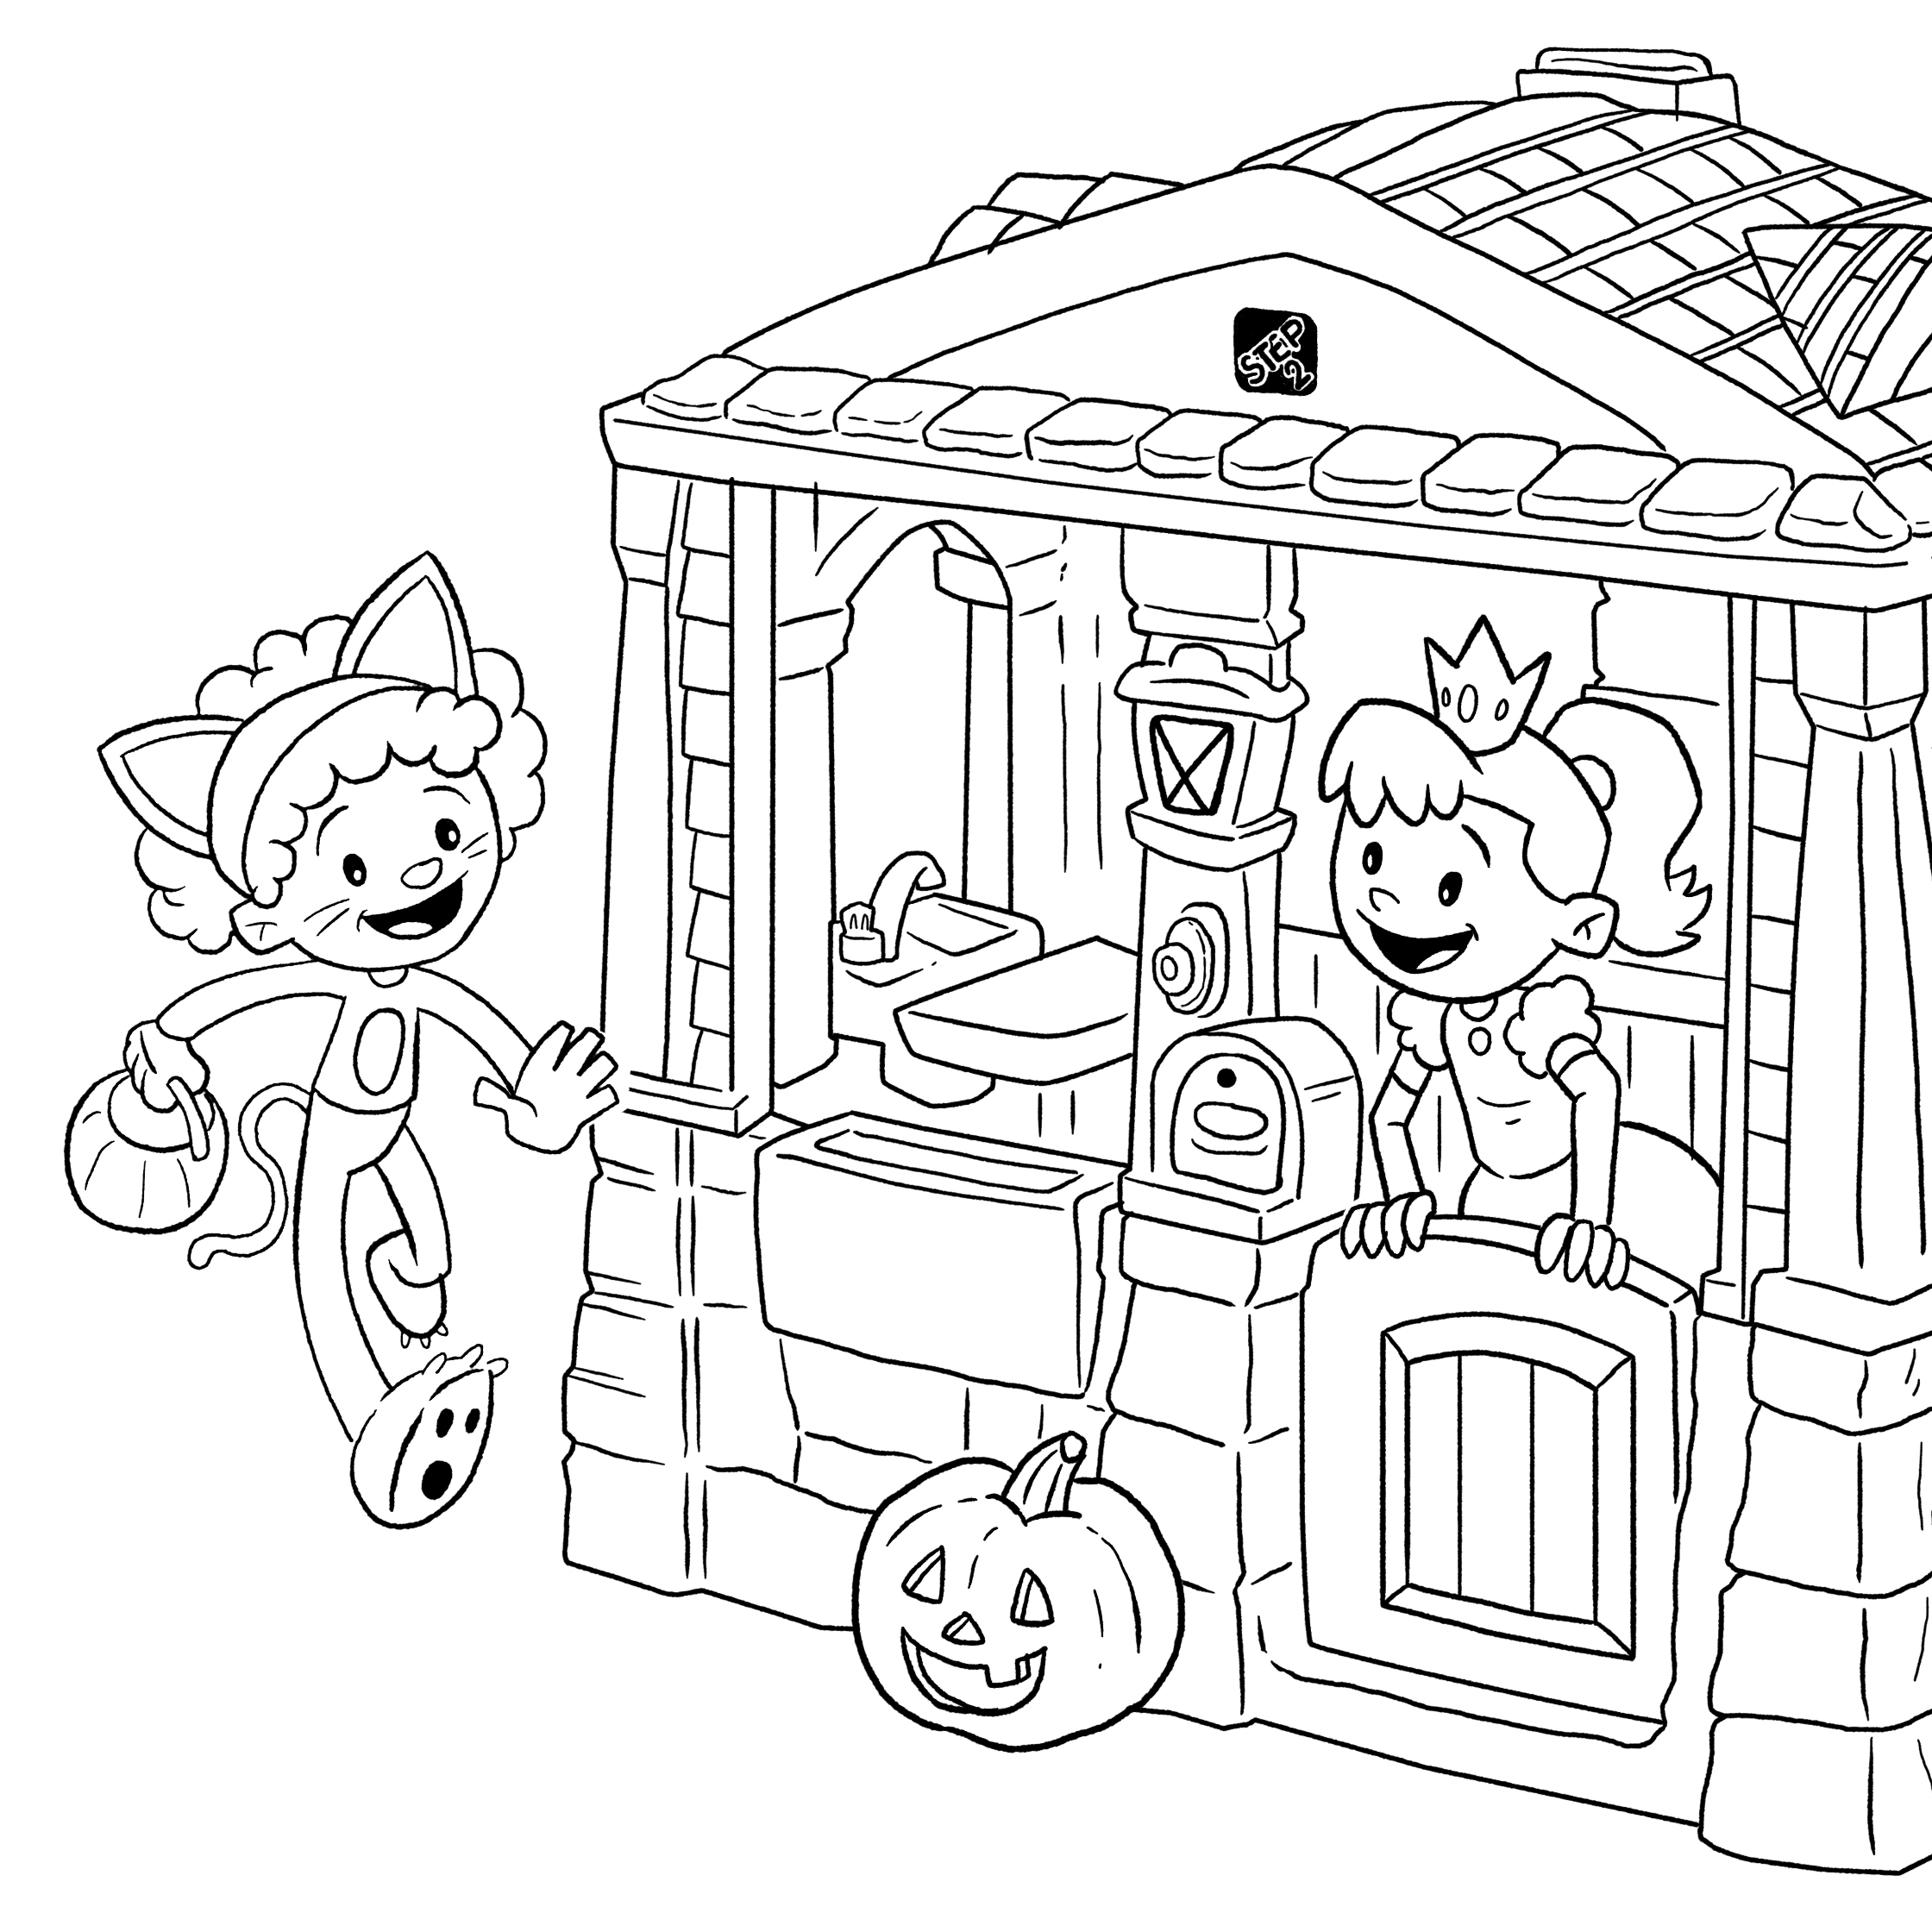 Halloween_coloring_page FTR